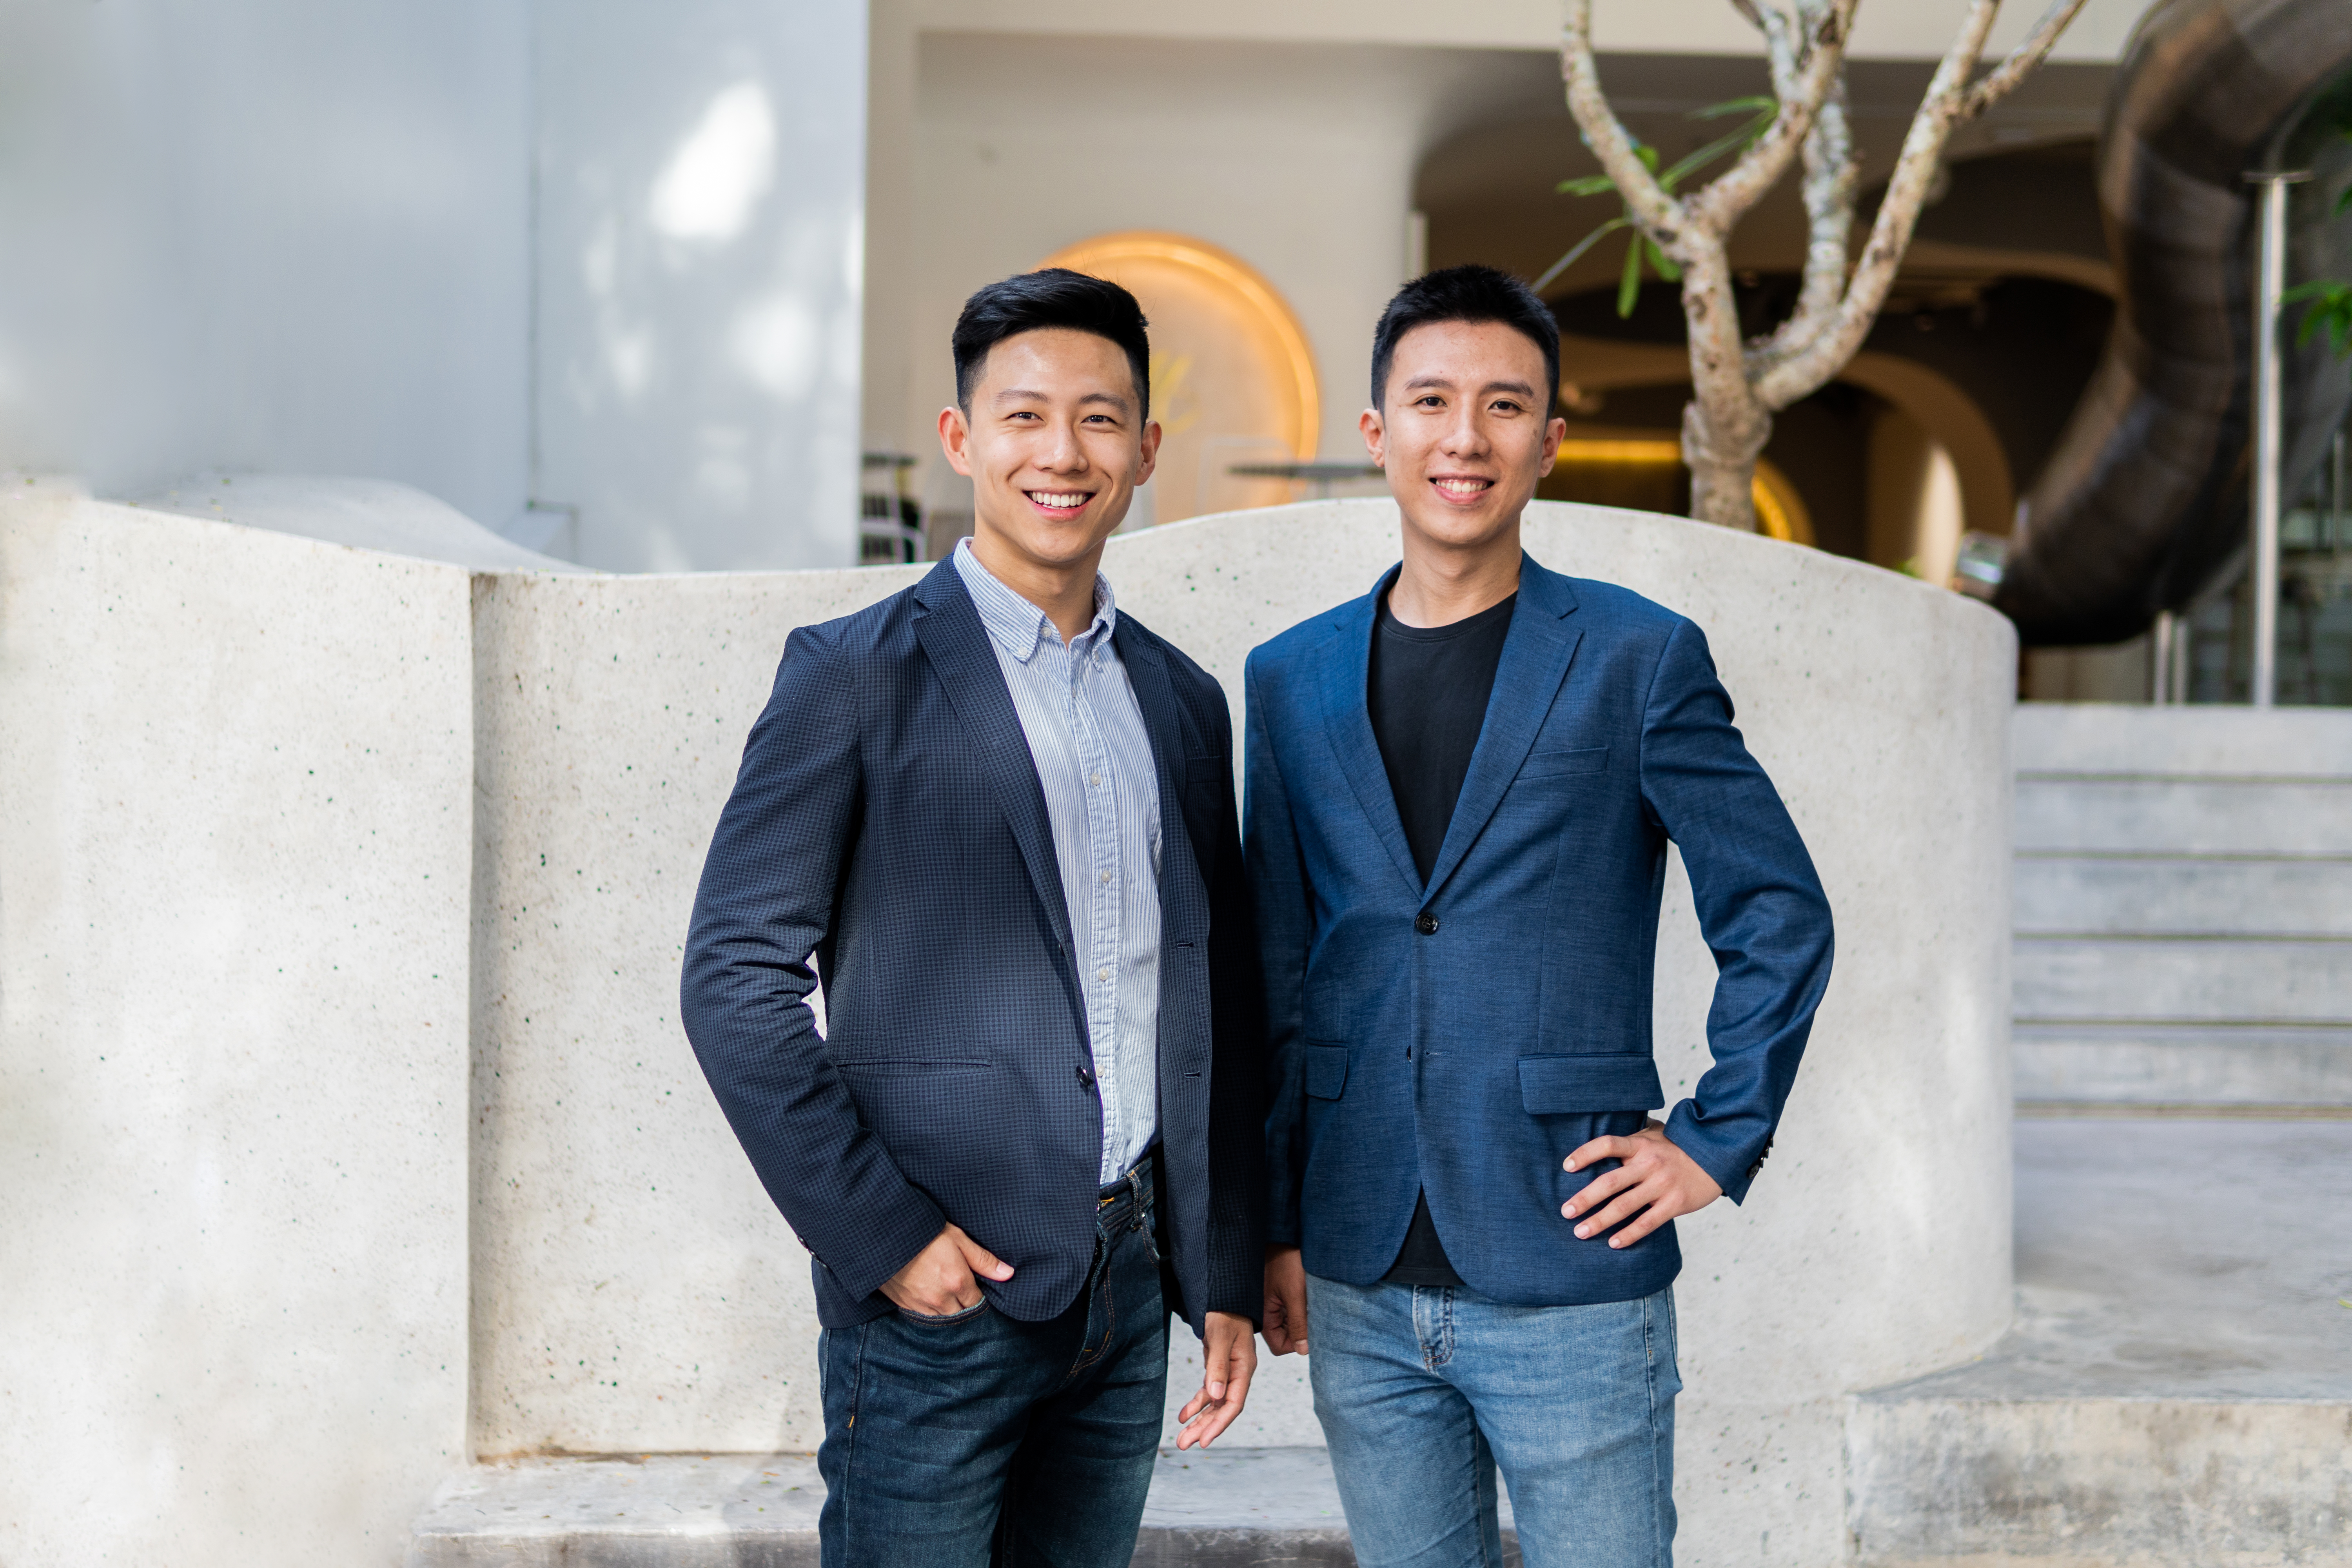 Homebase co-founders Phillip A good and Junyuan Tan